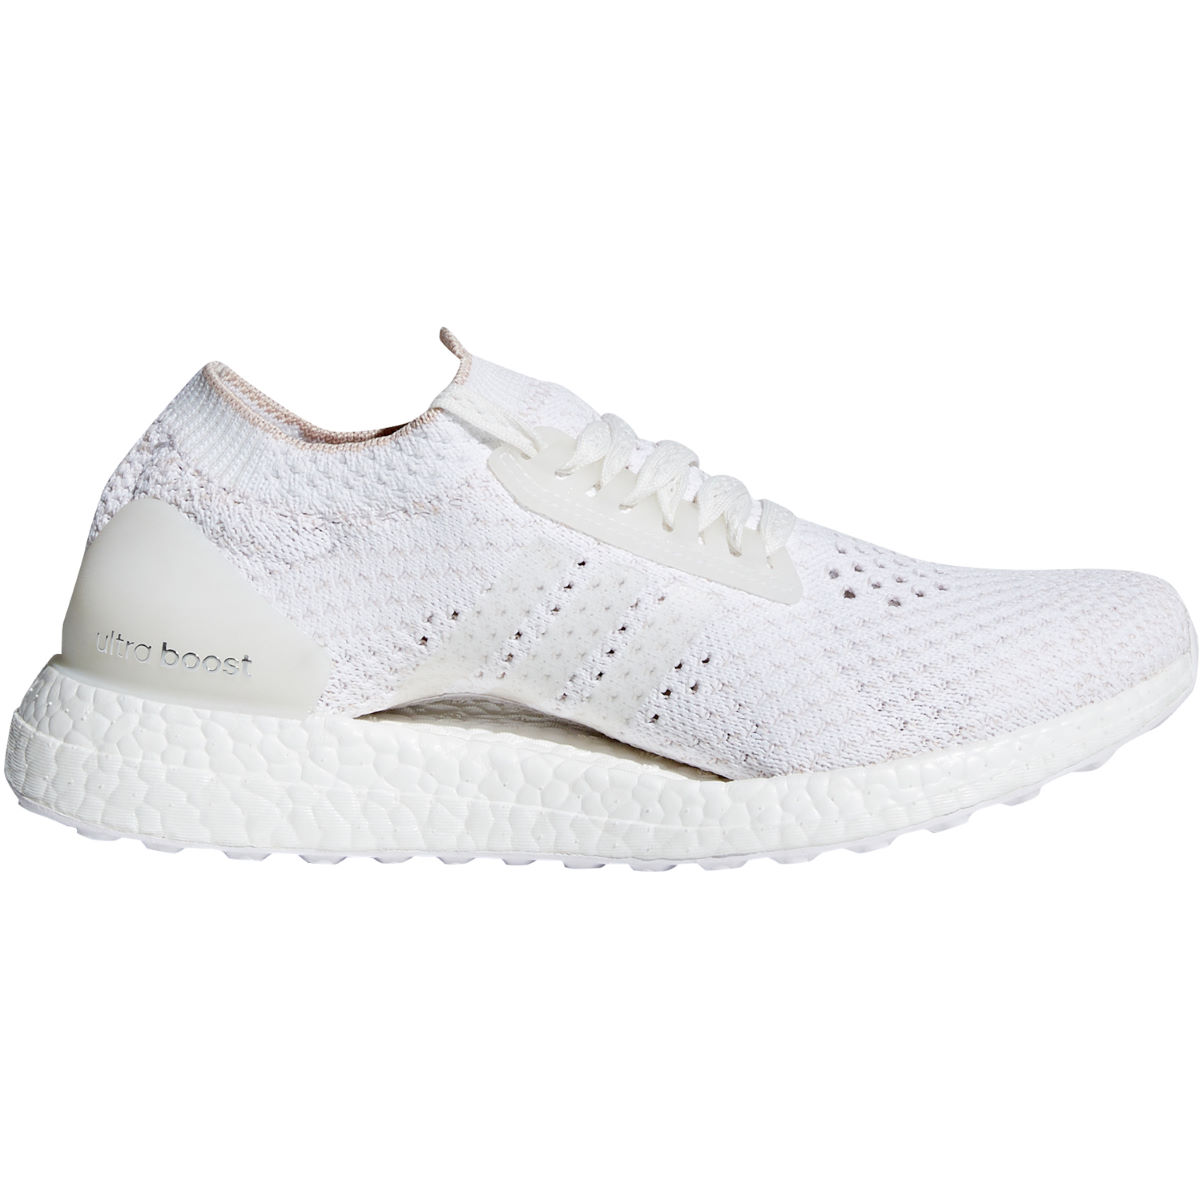 adidas UltraBoost X Clima Shoes - Zapatillas de running